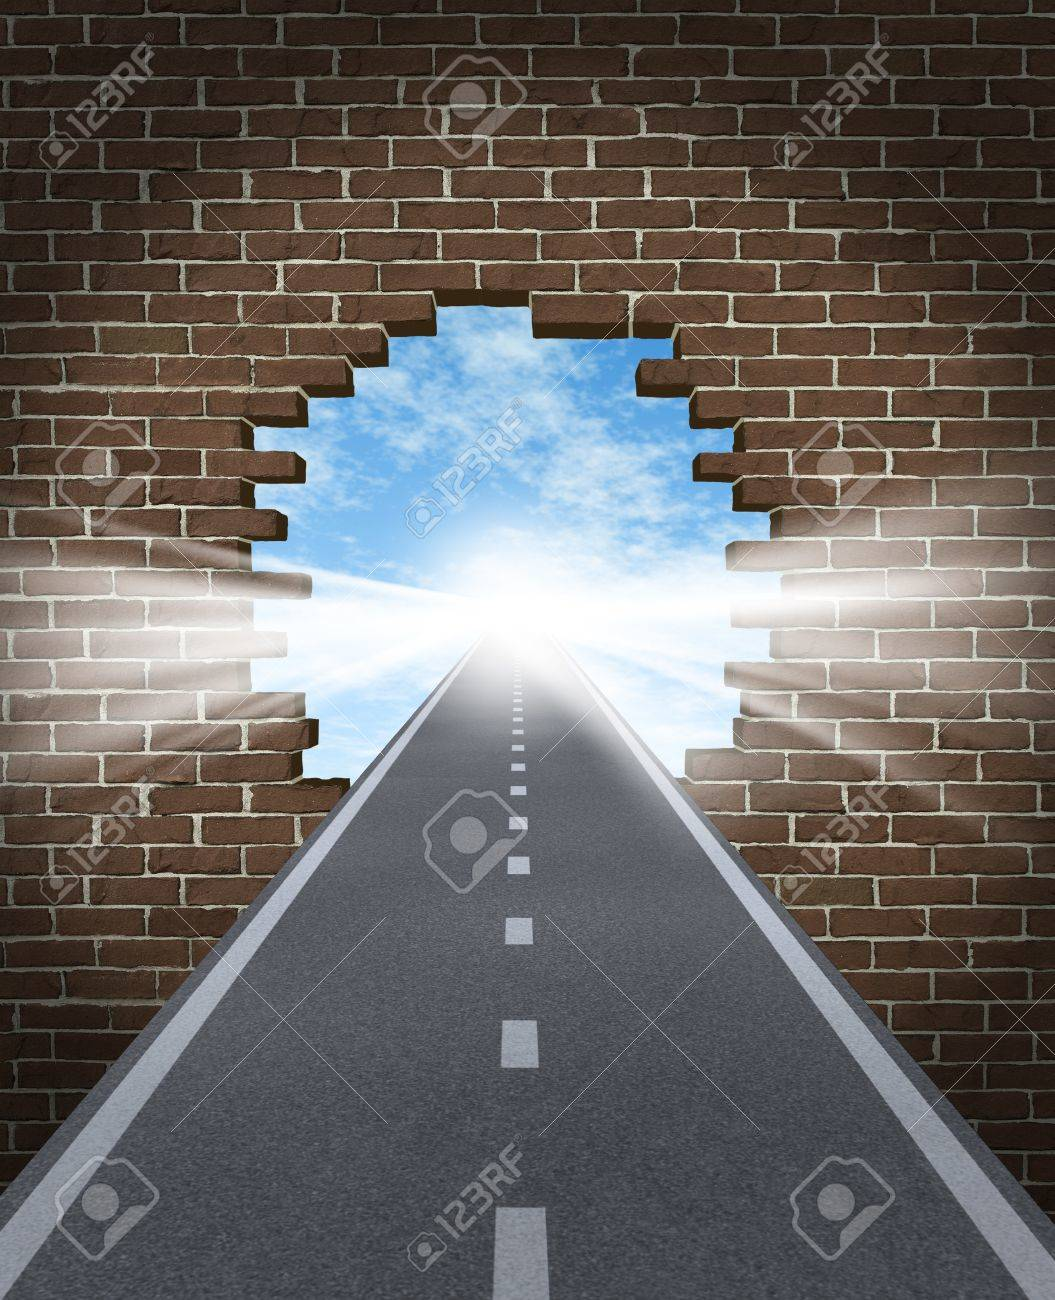 Break through to opportunity concept with a highway going through a broken brick wall to a shinning light of success on a sky background as a business icon and a symbol for a new life vision, Stock Photo - 15845982